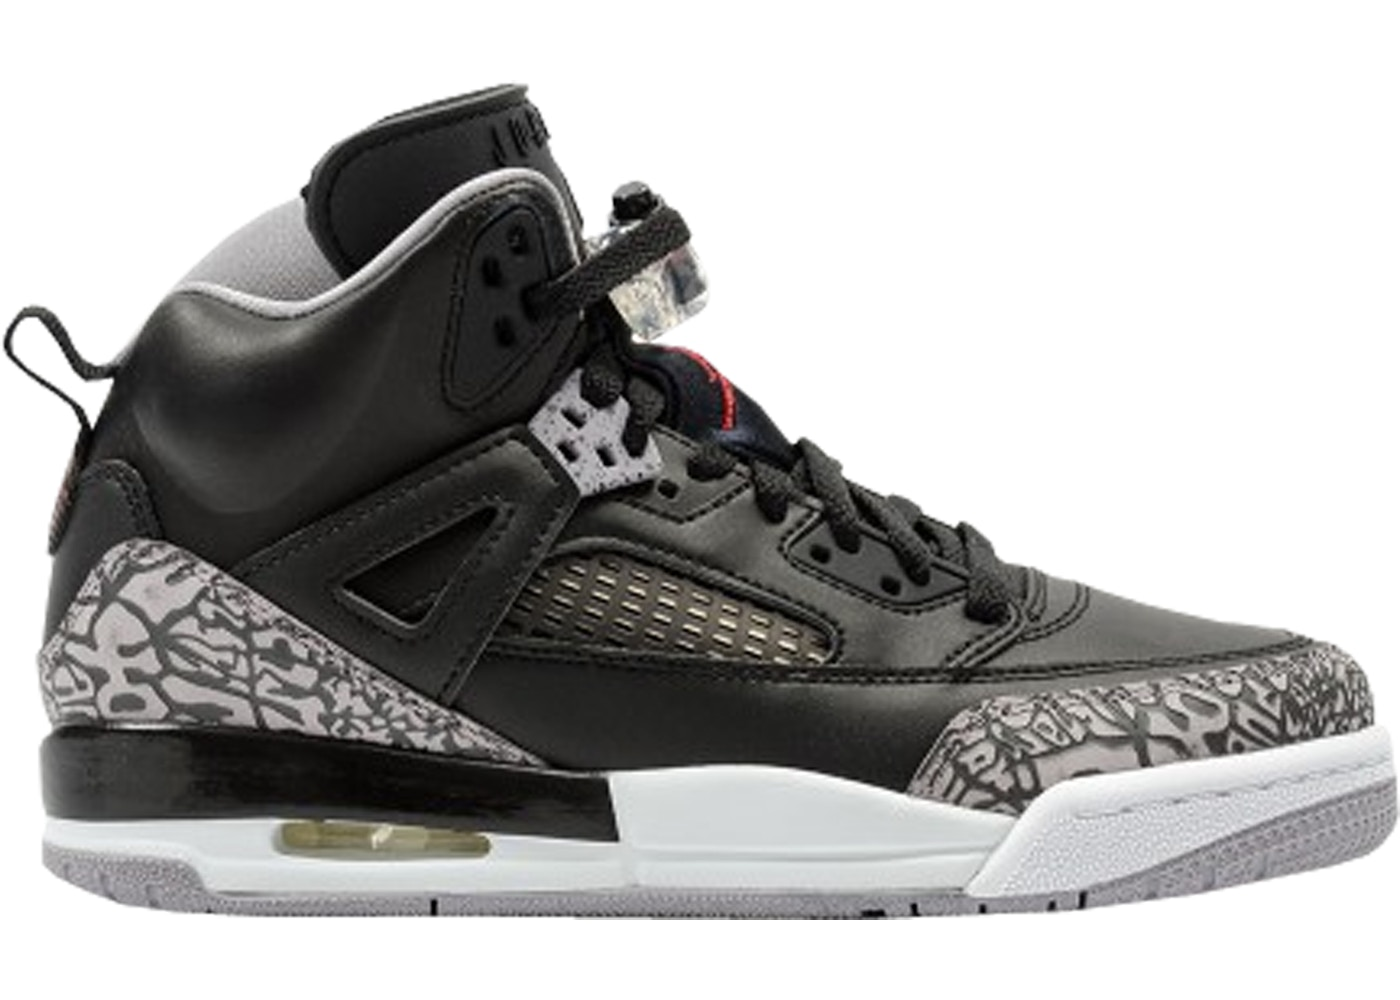 Buy Air Jordan Spizike Shoes   Deadstock Sneakers adeb2827e1